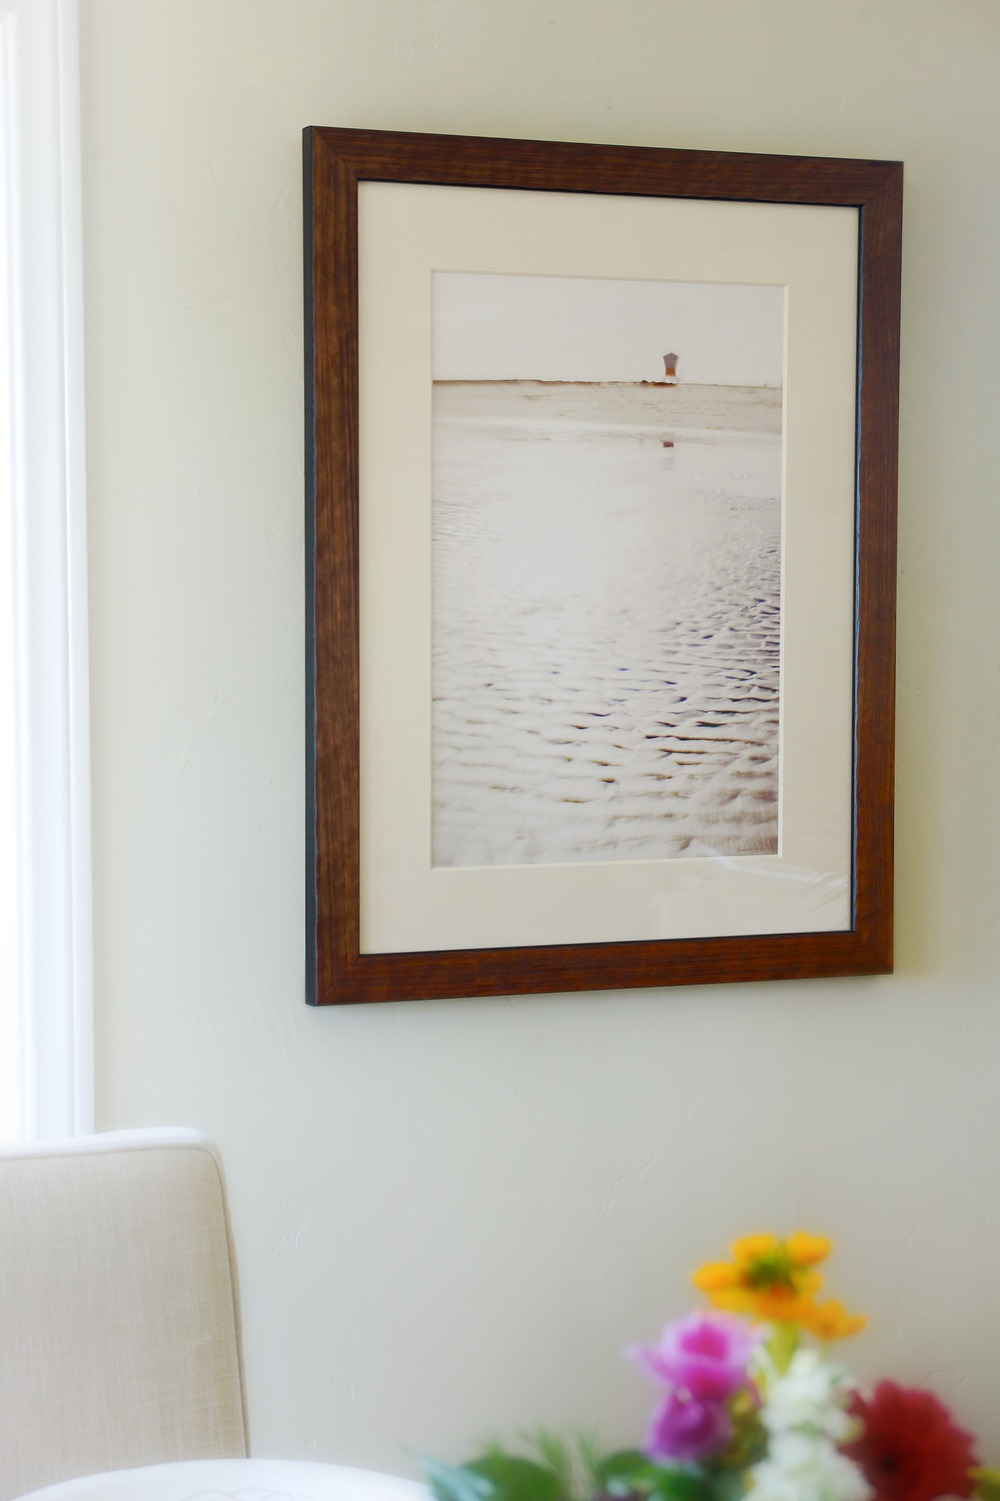 #6, Limited Edition Arches® Watercolor Print, matted and framed in pressed Olive Wood